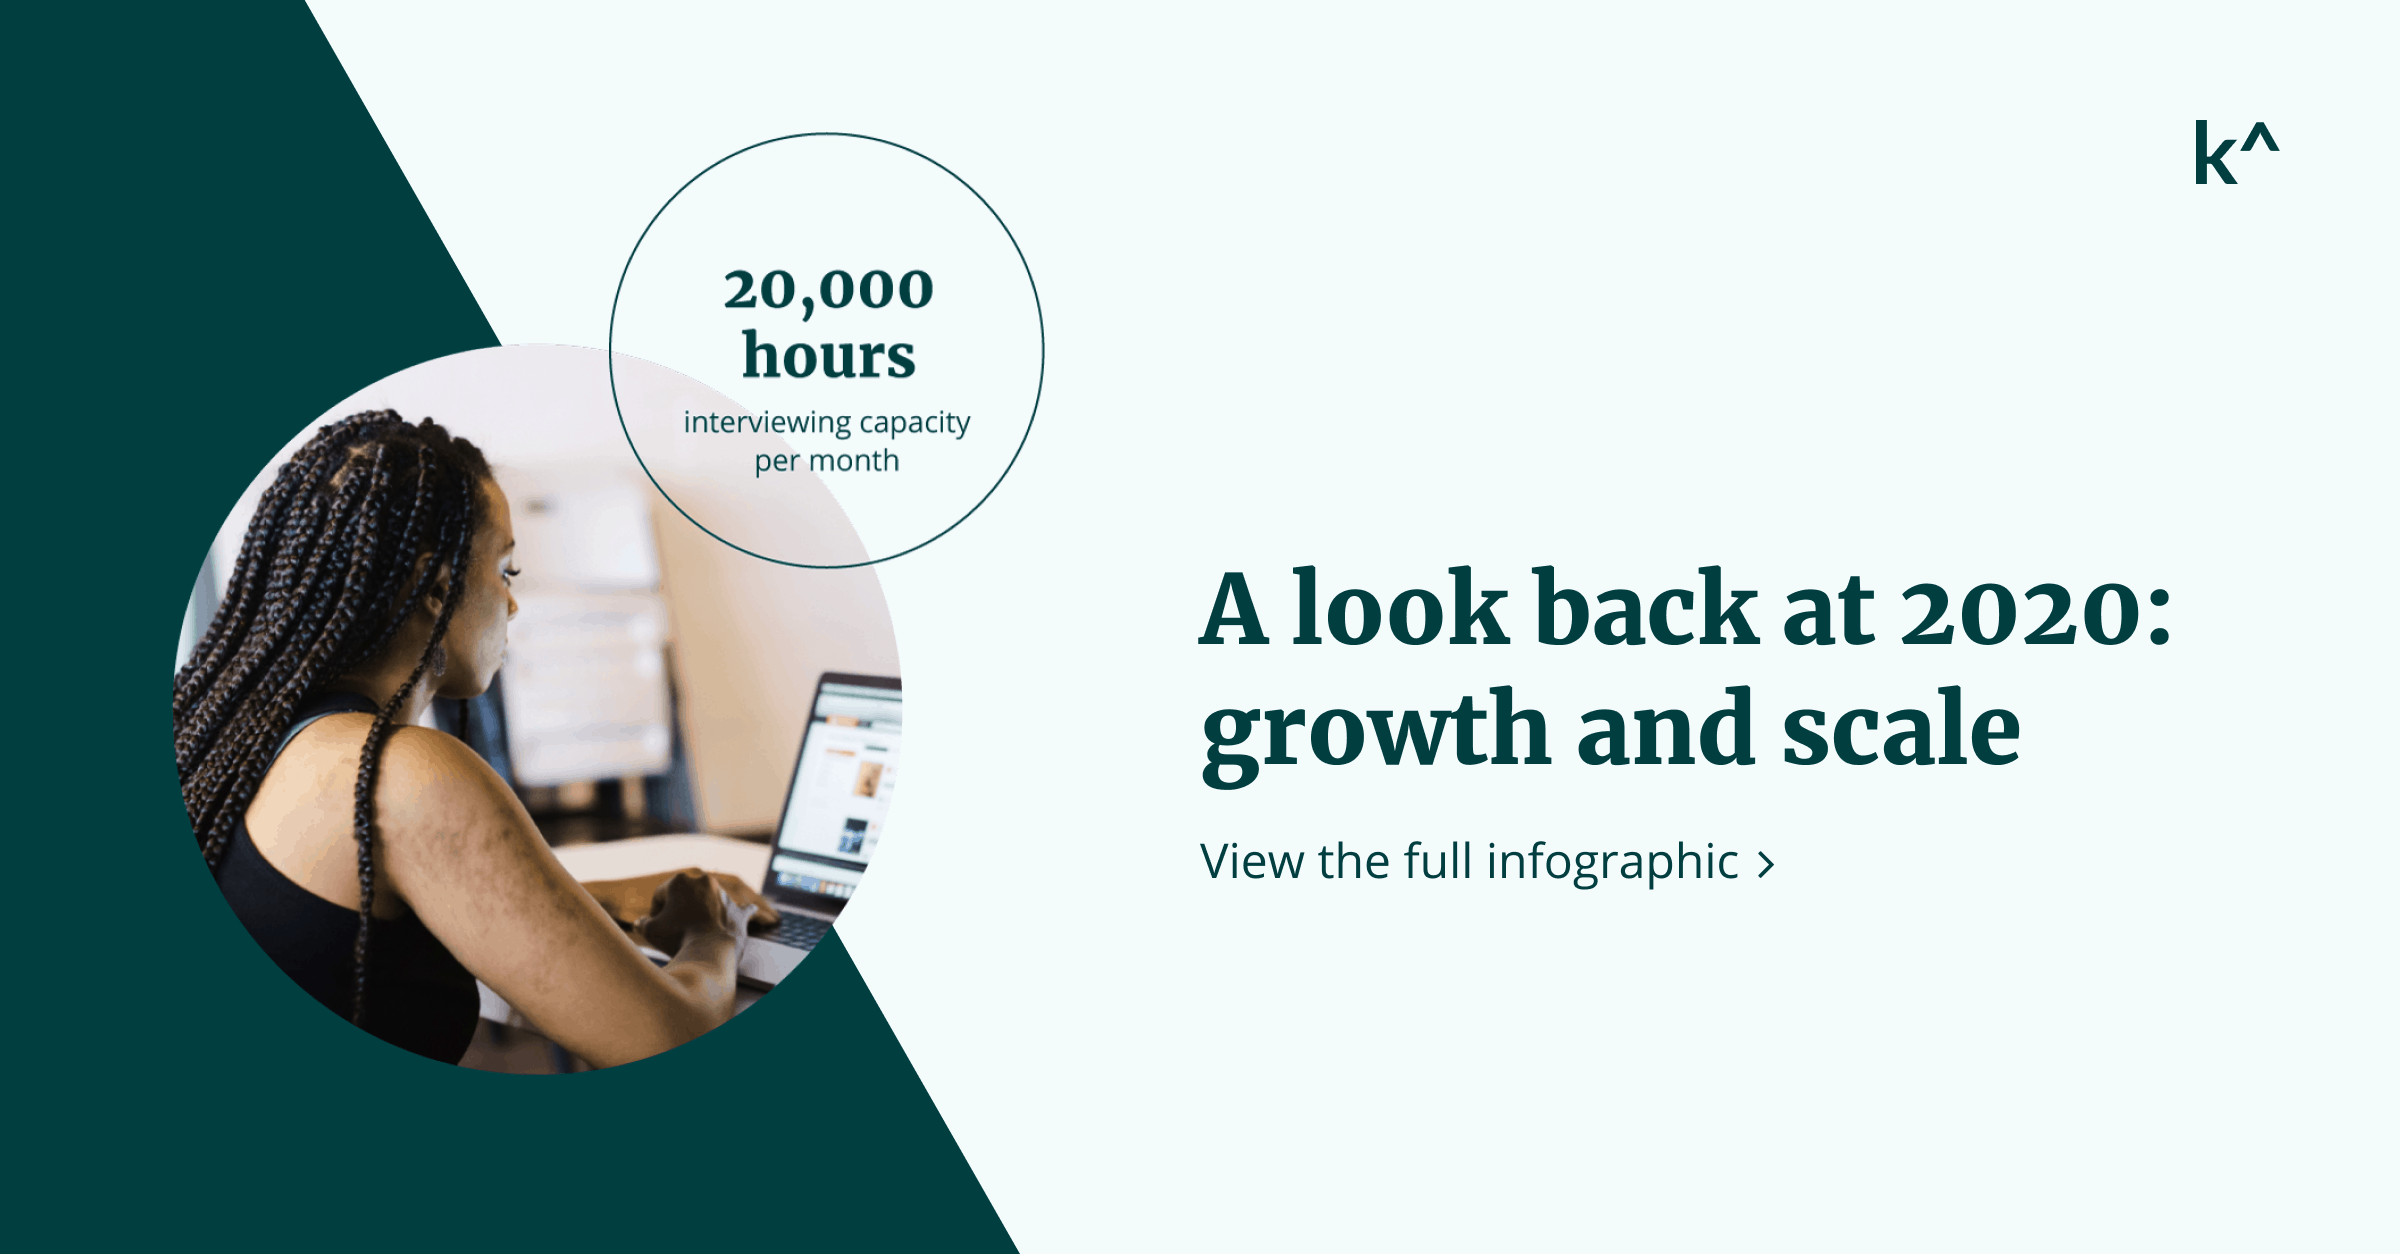 A look back at 2020: growth and scale